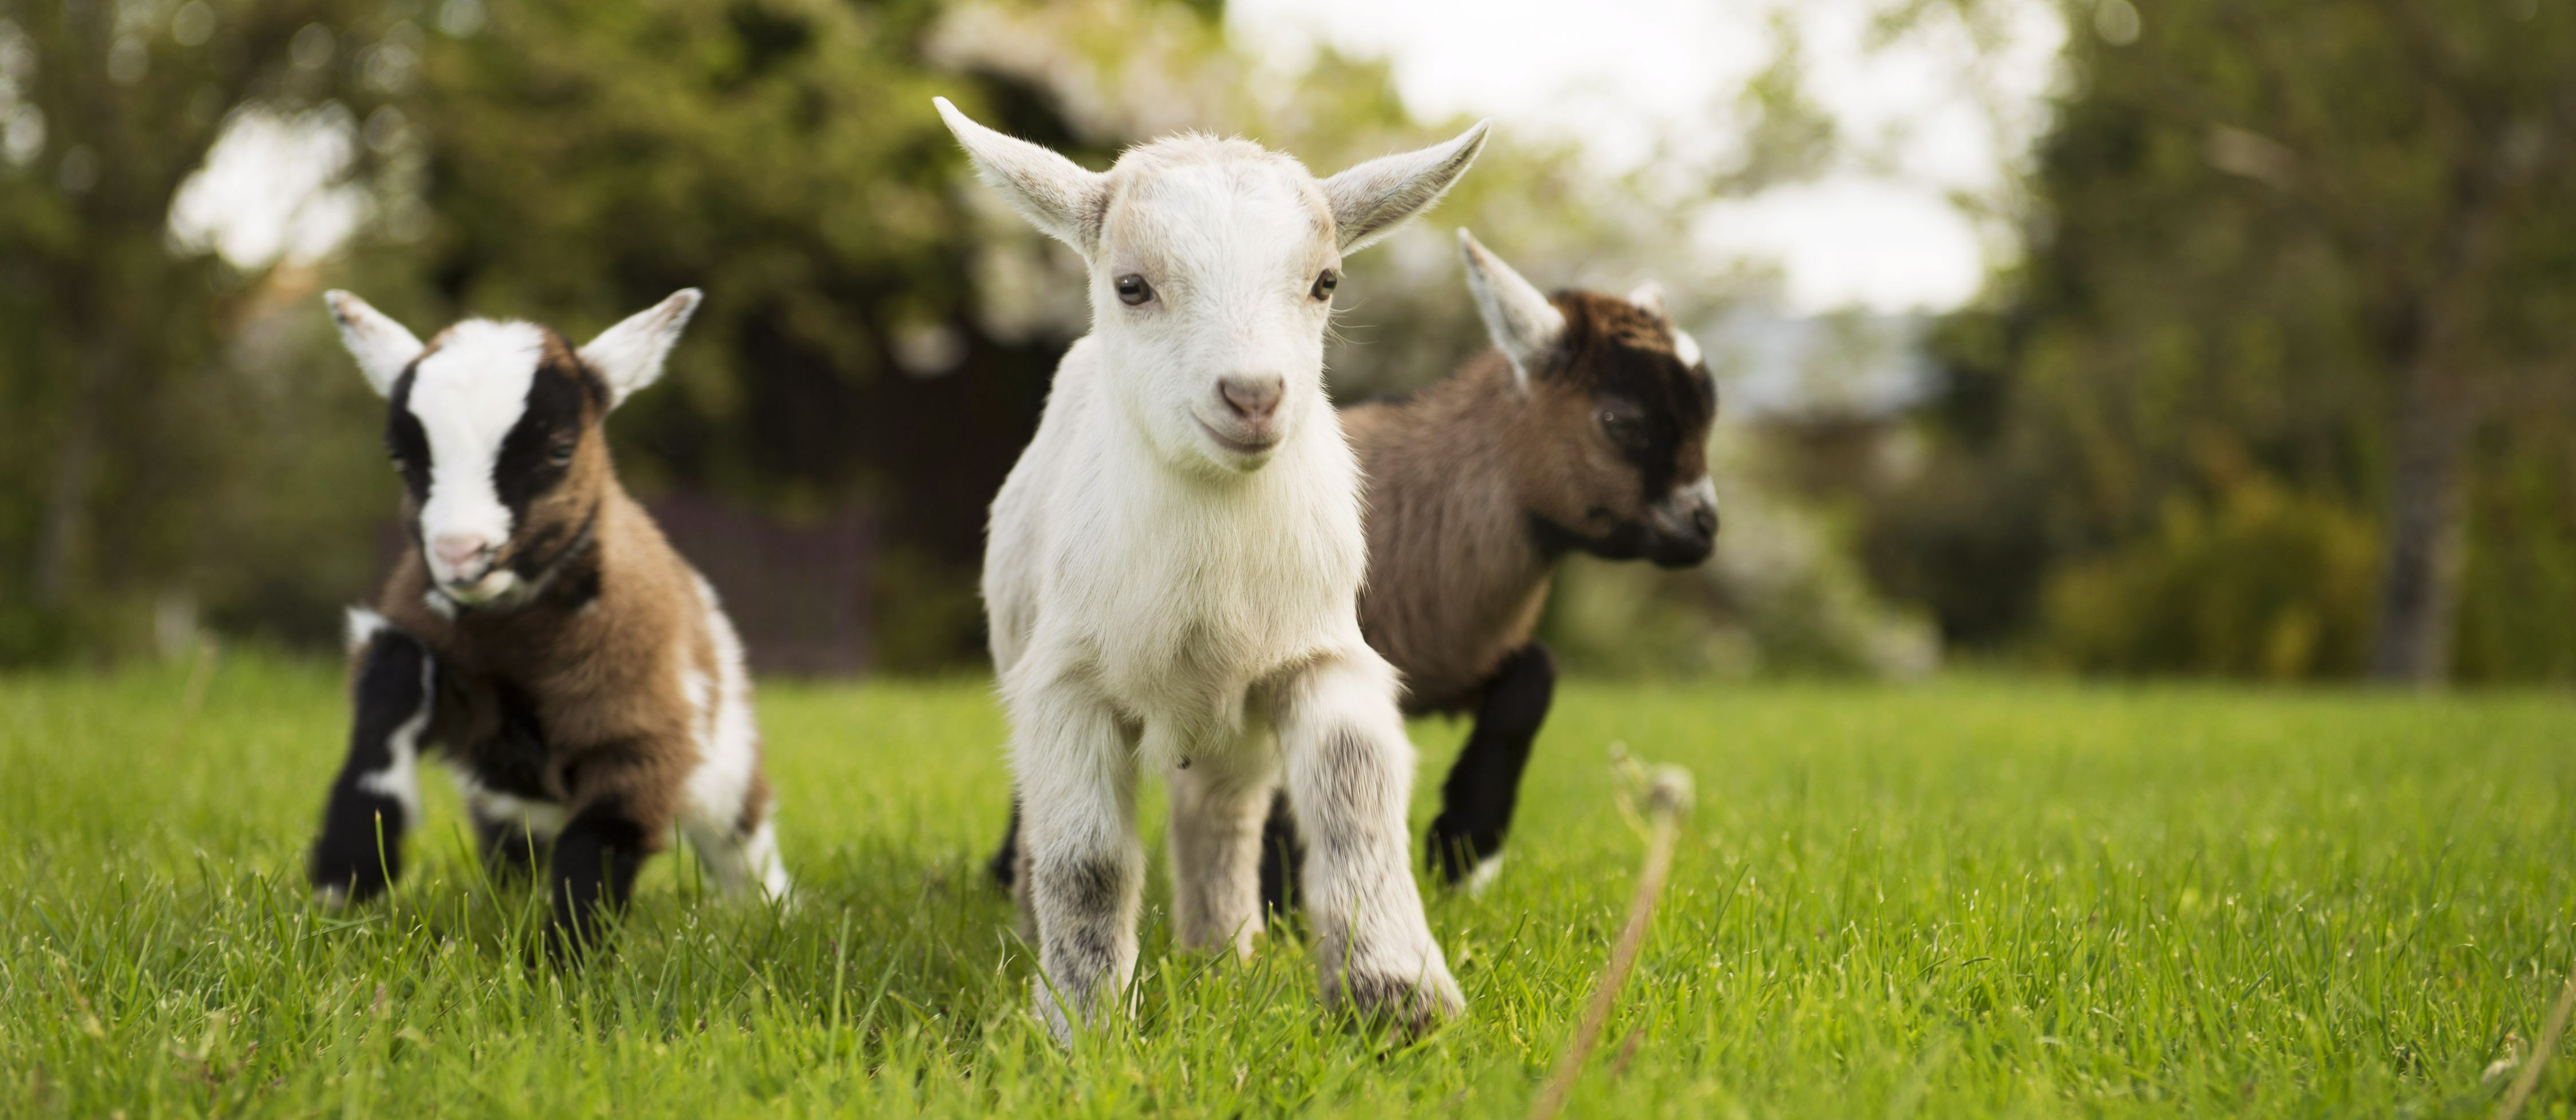 Animal Farm Wallpaper Baby Goats Born News From The Olde House The Olde House